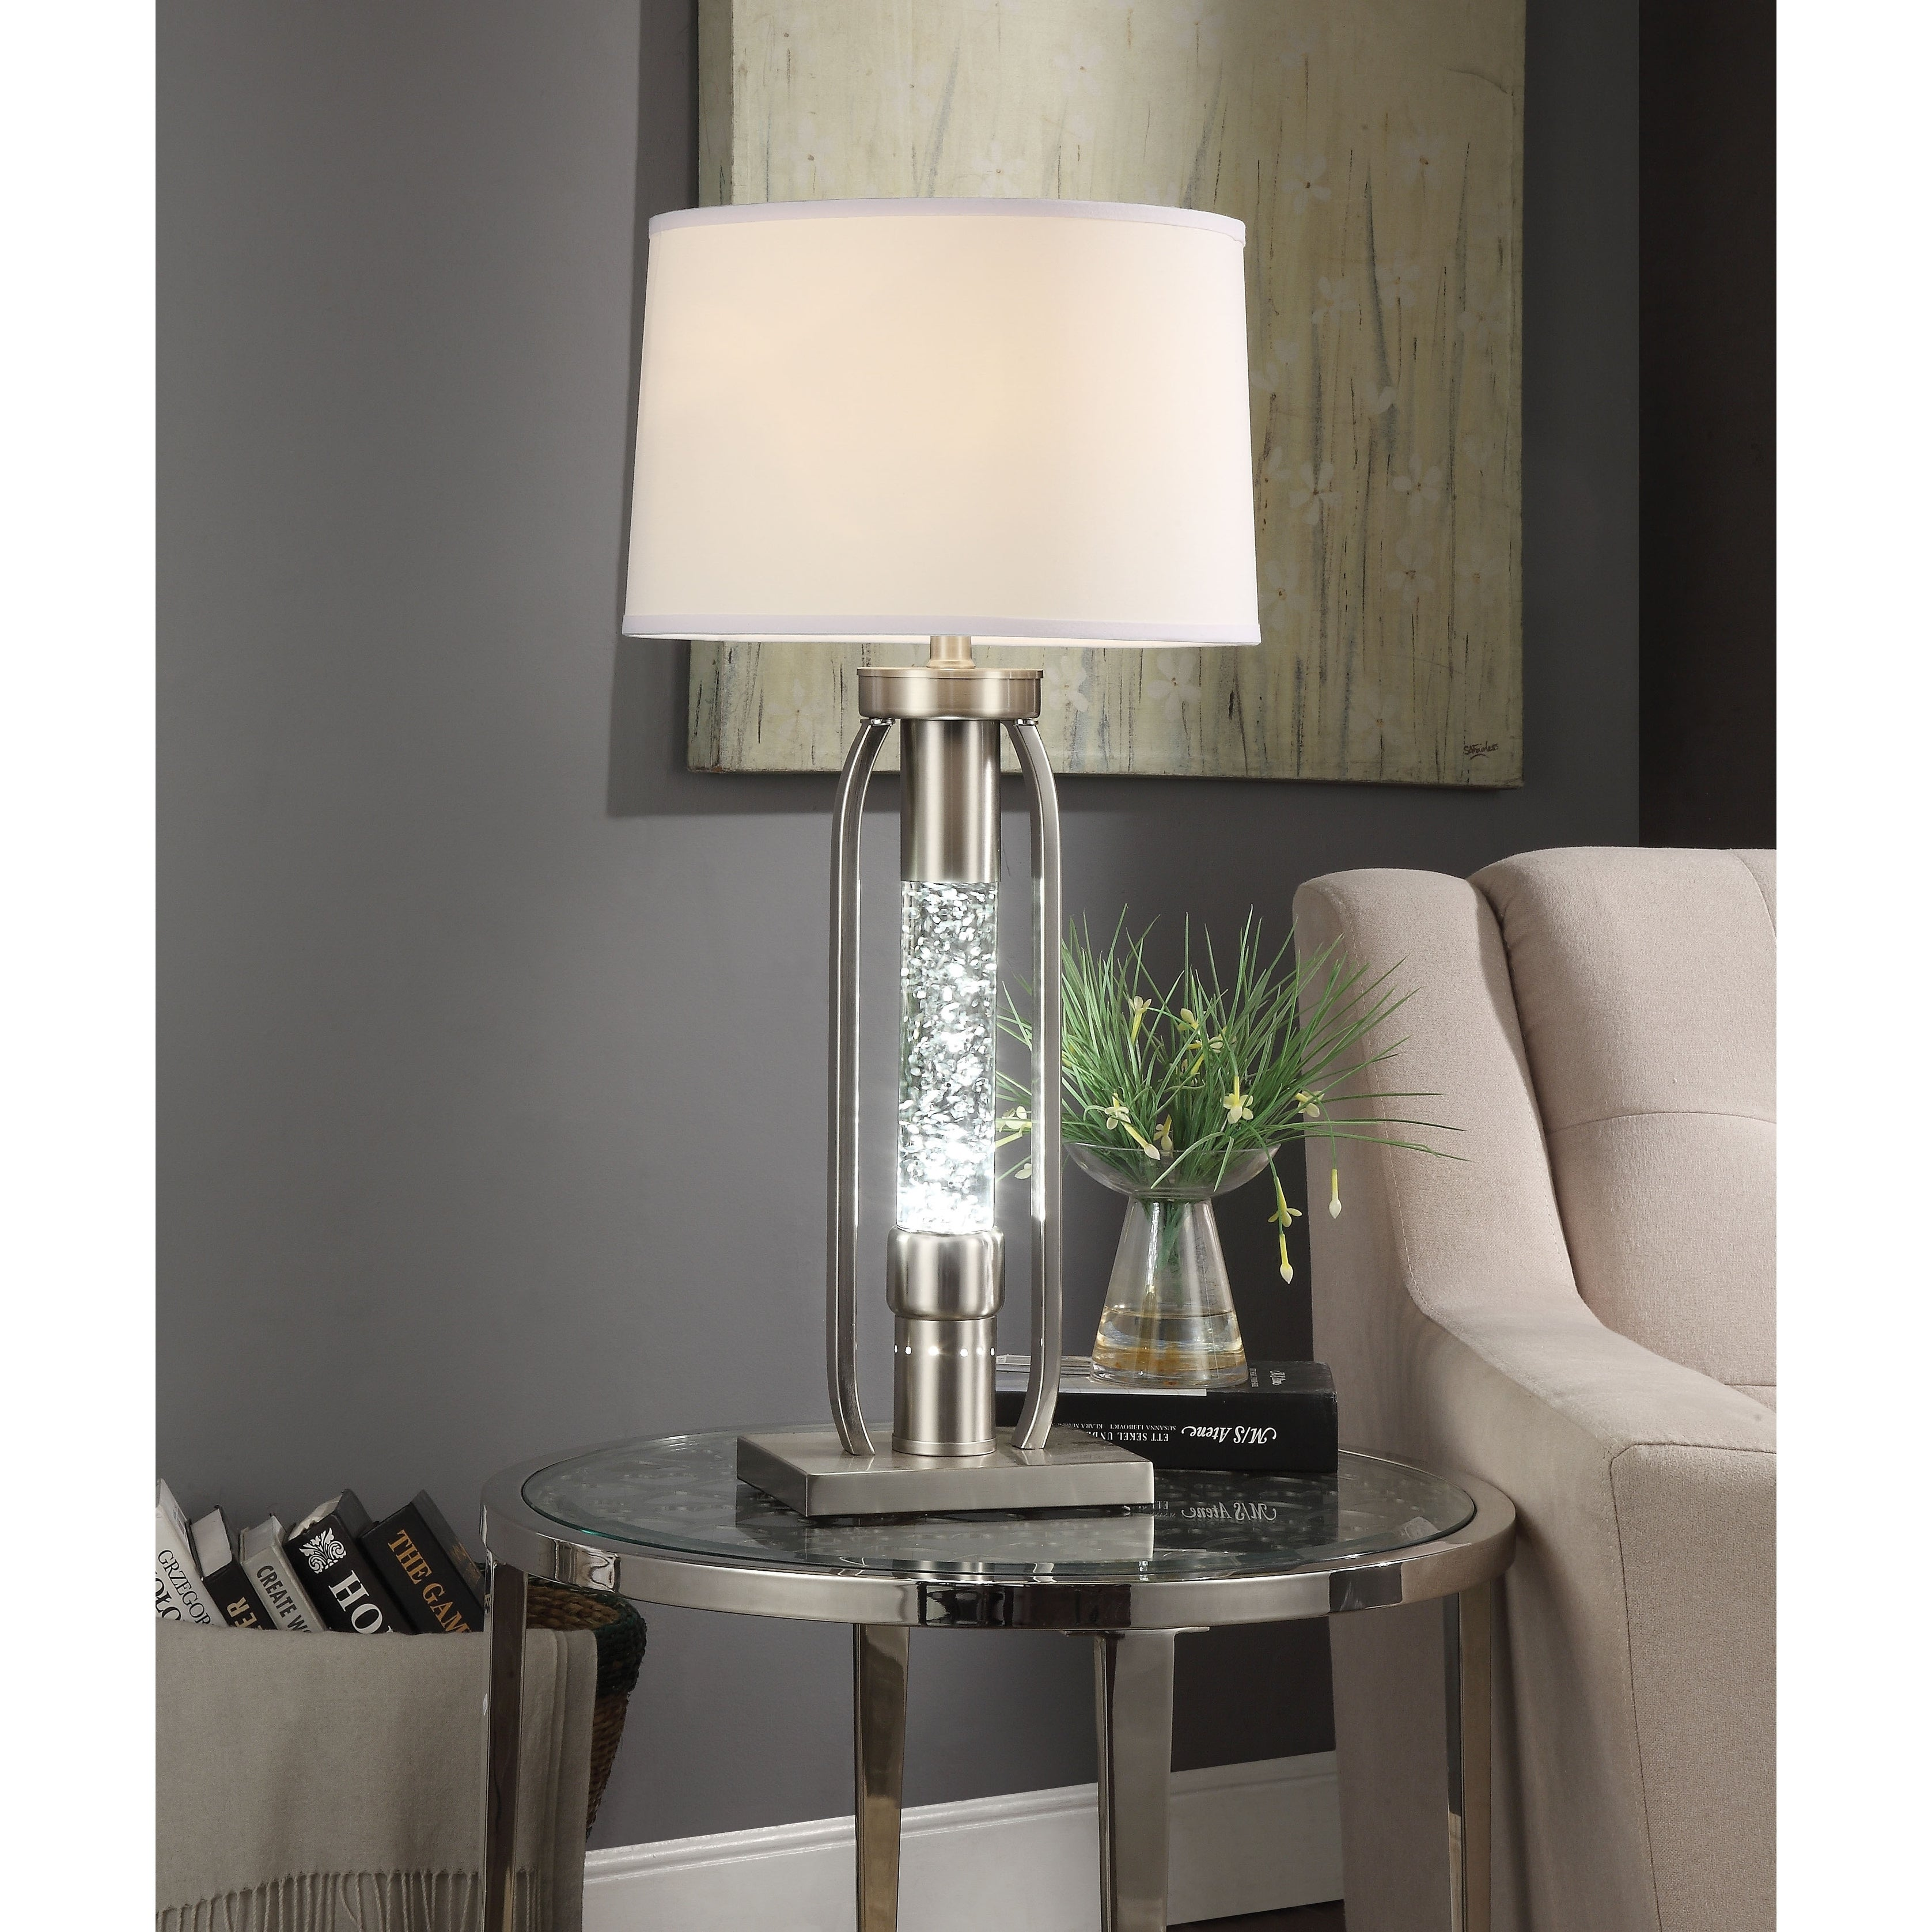 Floor Lamp with Fabric Drum Shade